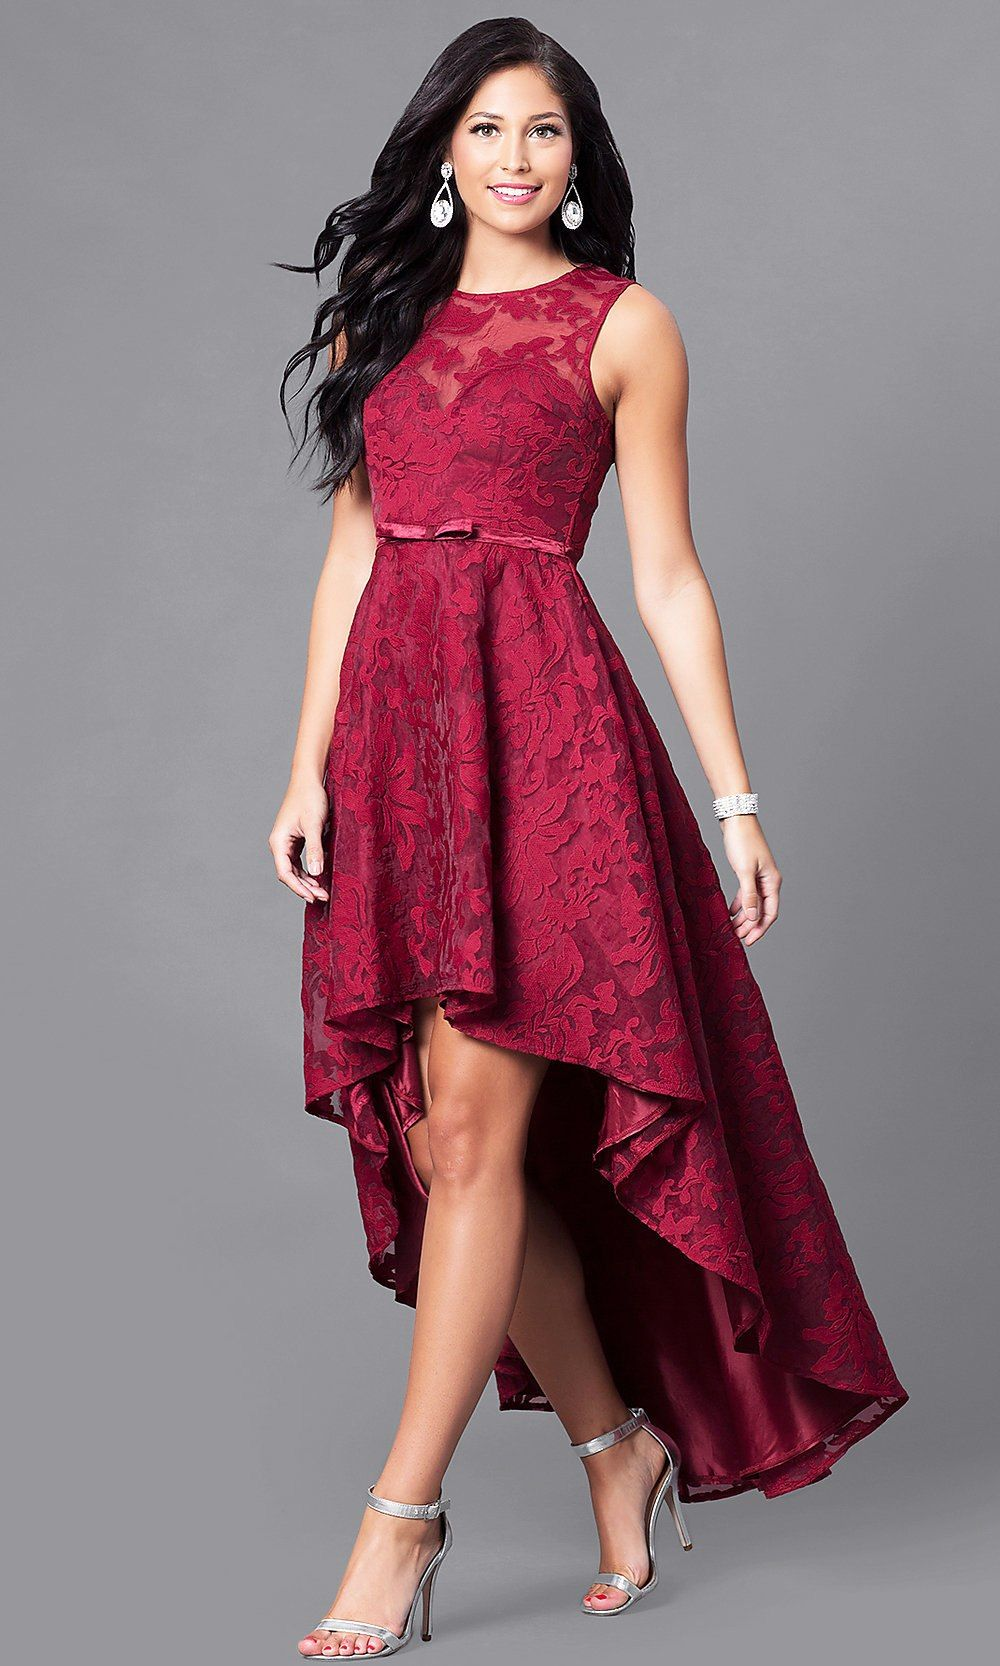 74b9cb424a Lace High-Low Sleeveless Semi-Formal Party Dress